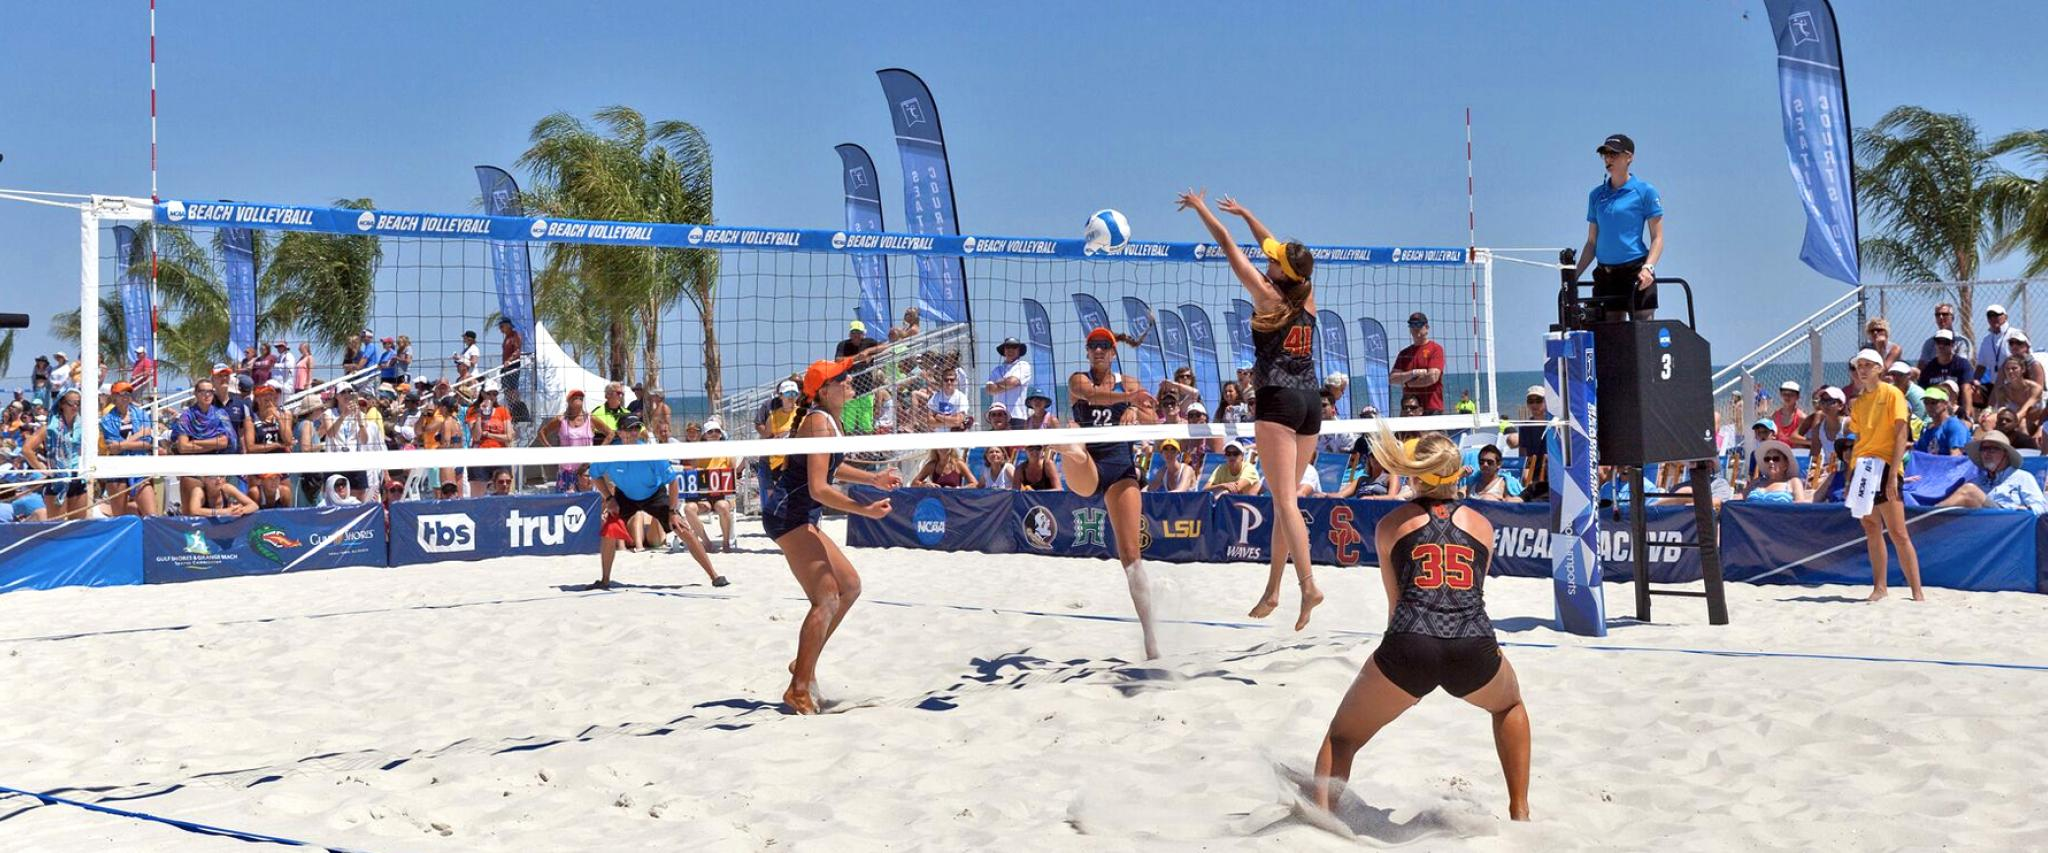 NCAA Beach Volleyball Championship in Gulf Shores